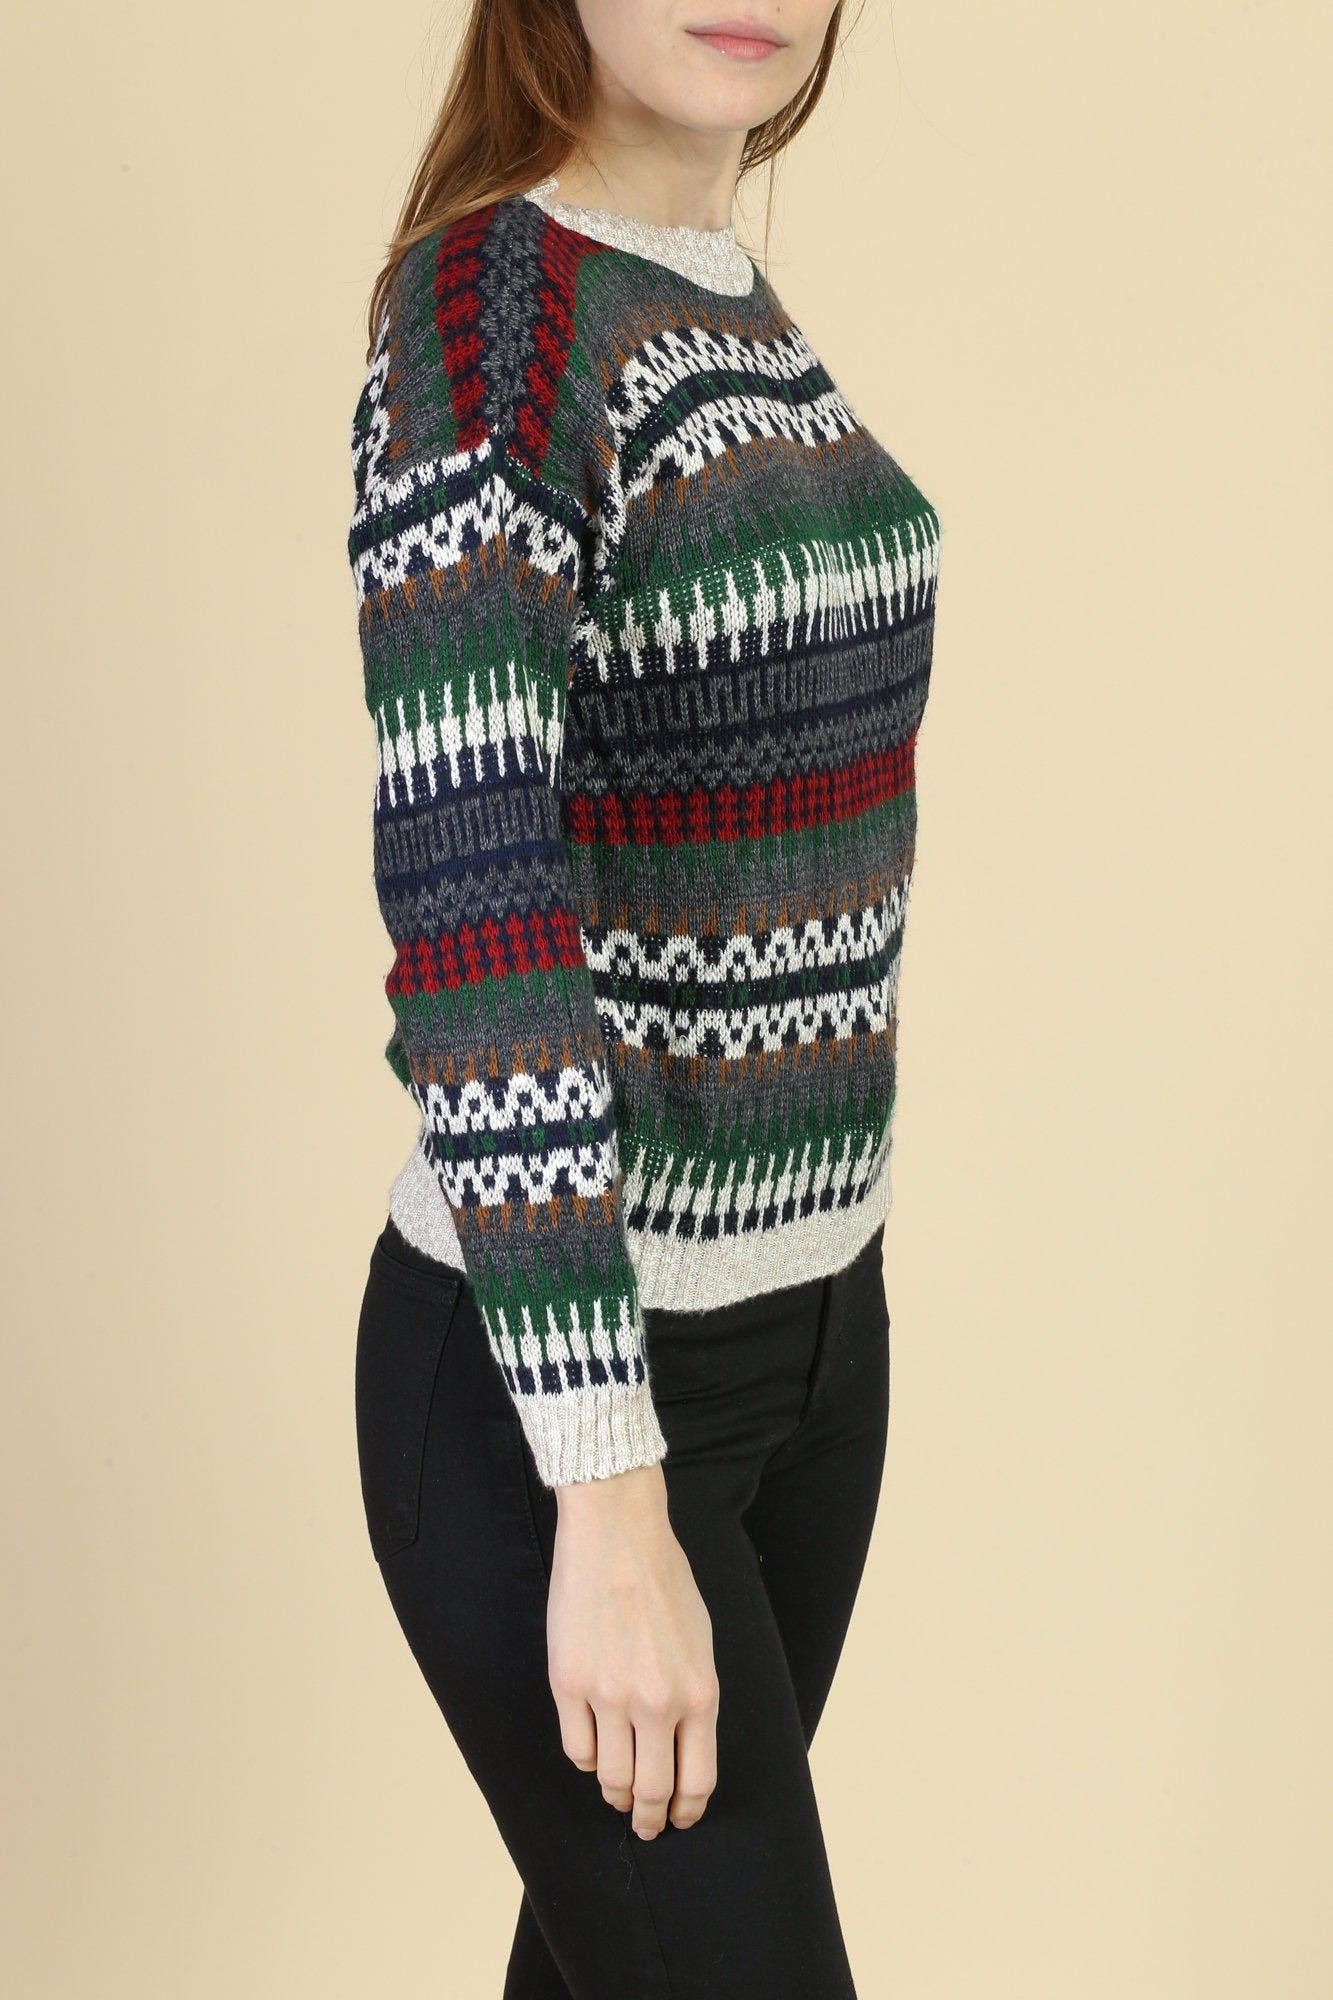 90s Striped Knit Sweater - Small/Petite